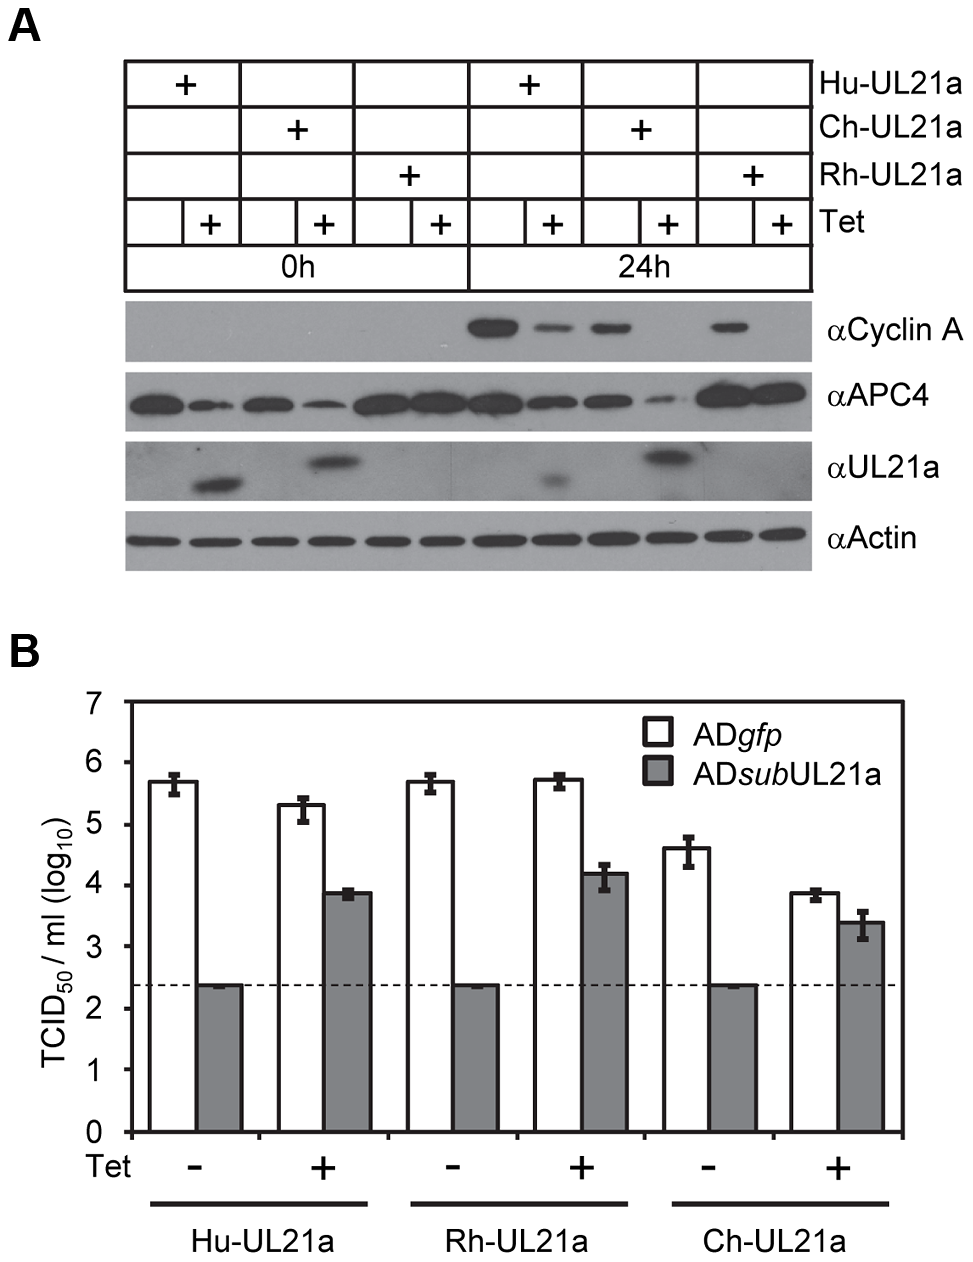 Activity to regulate Cyclin A is conserved in pUL21a of primate CMVs.